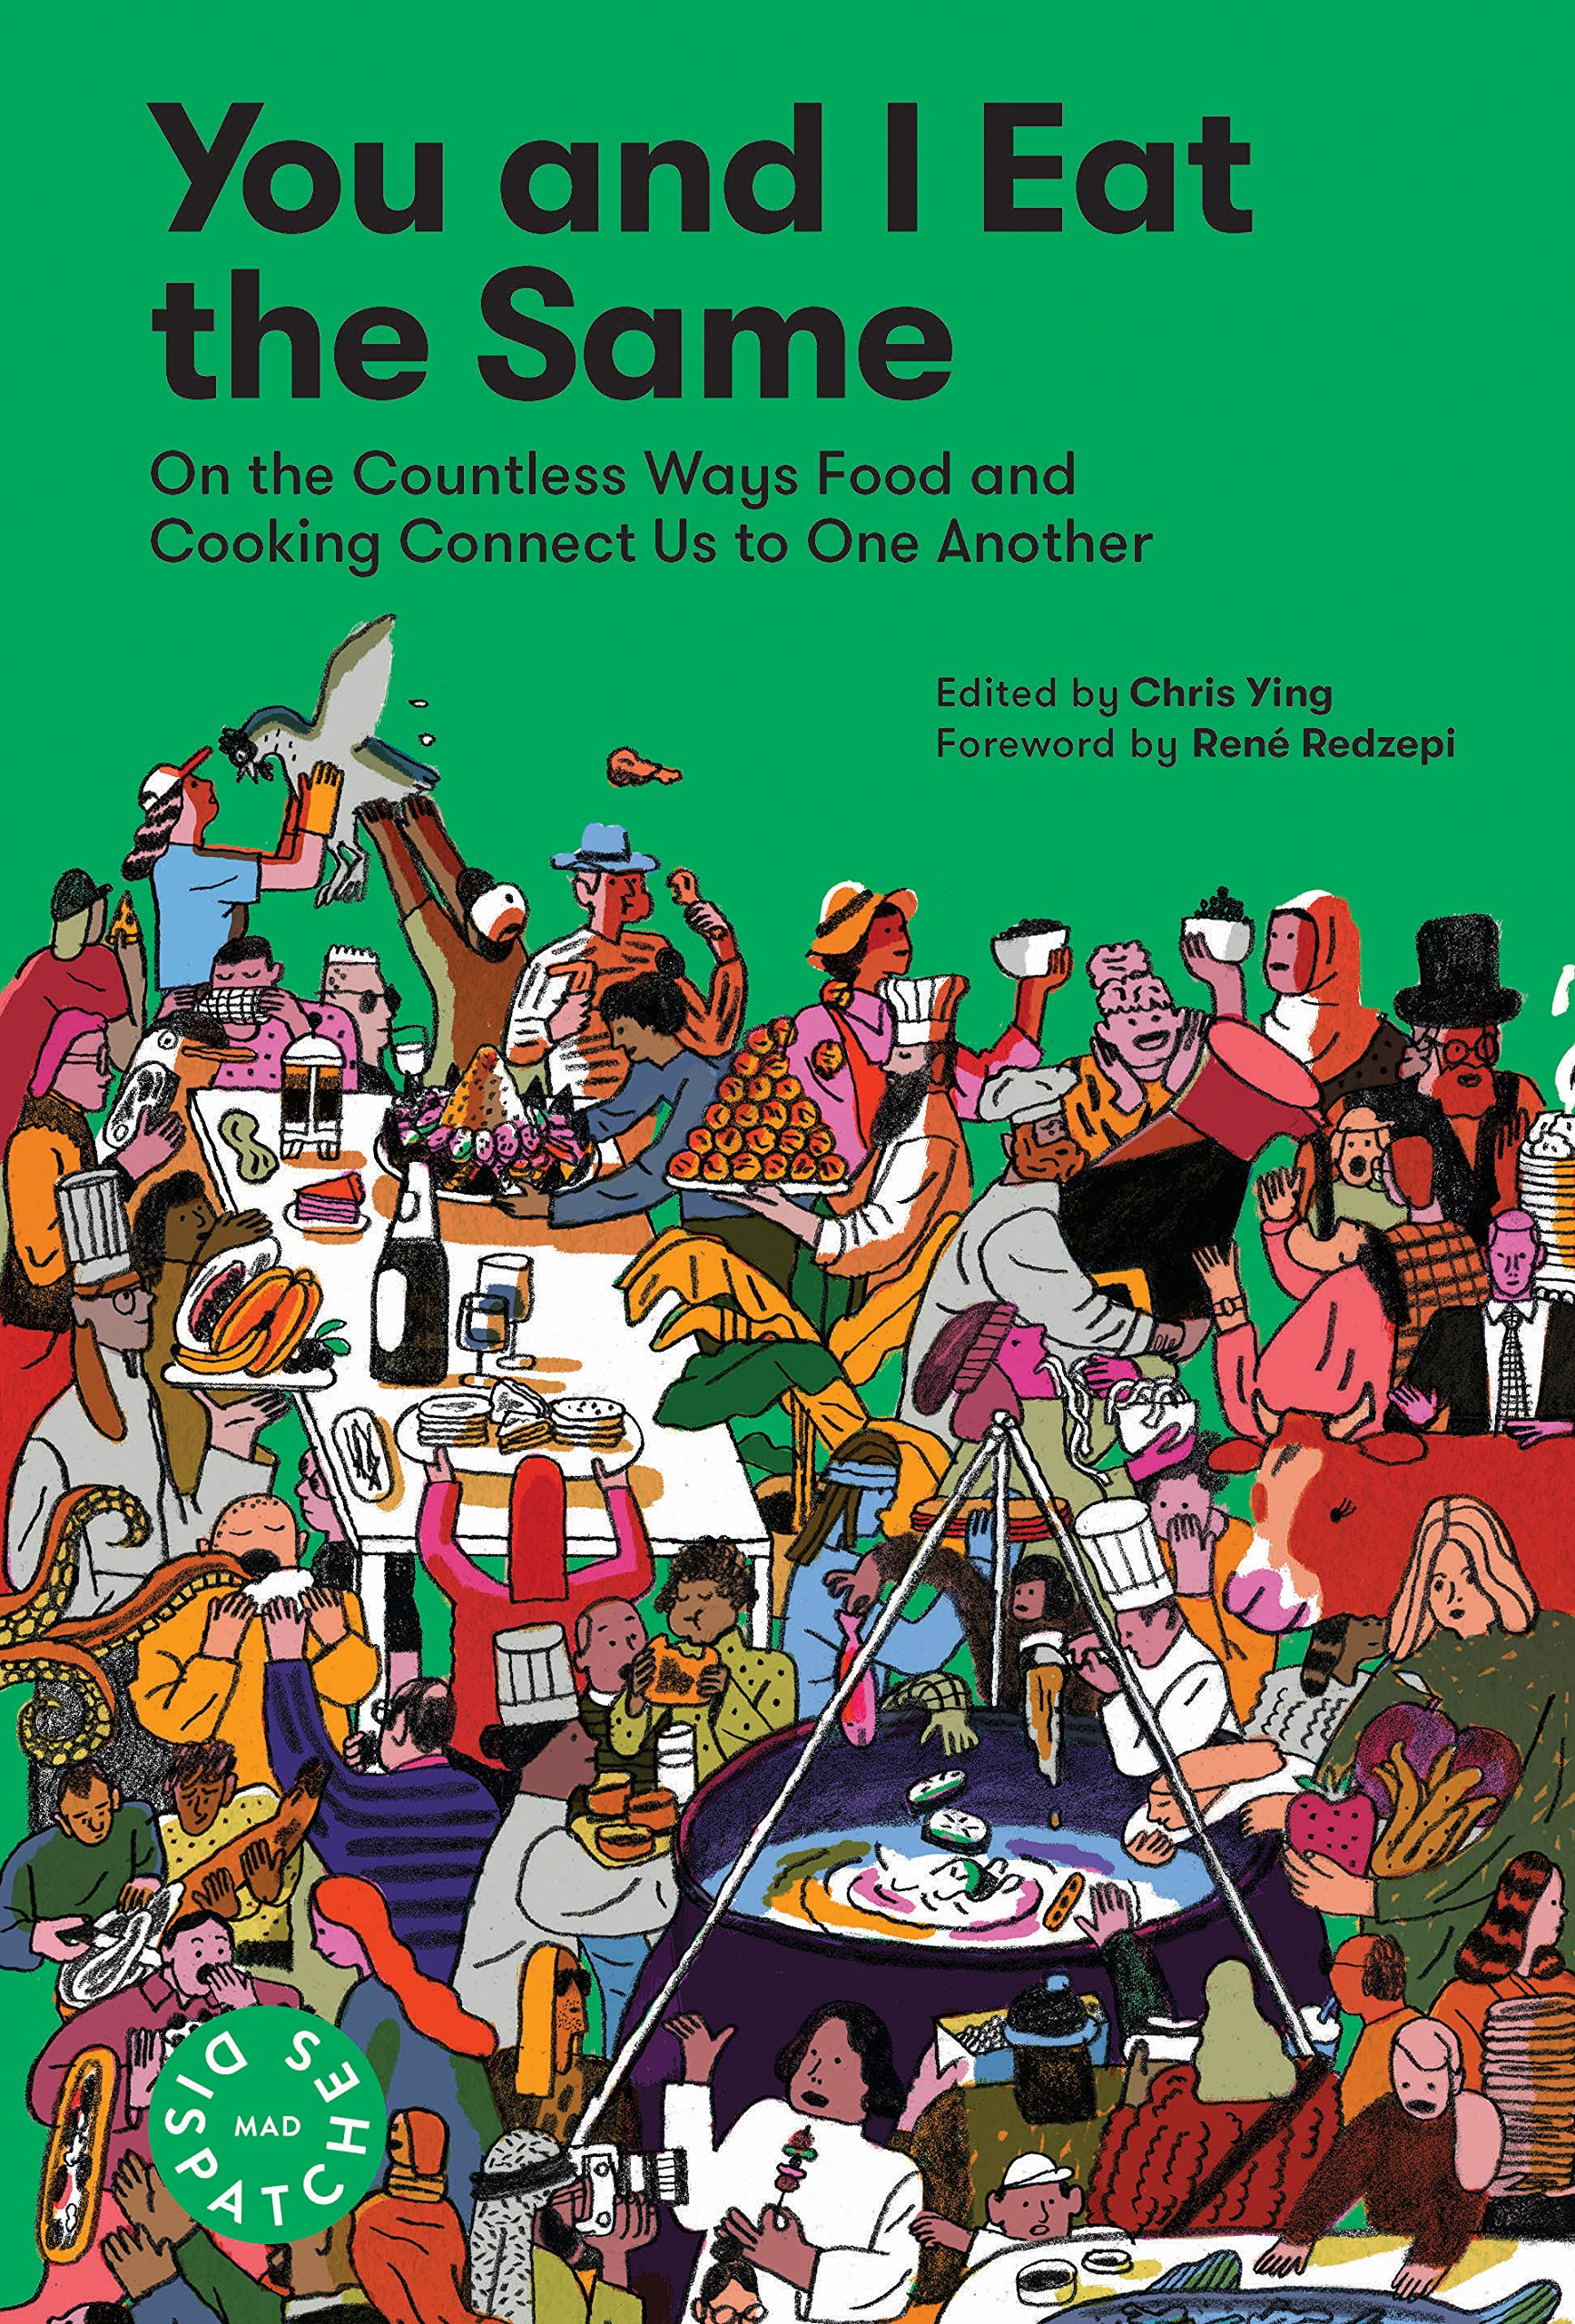 You and I Eat the Same: On the Countless Ways Food and Cooking Connect Us to One Another (MAD Dispatches, Volume 1) pdf